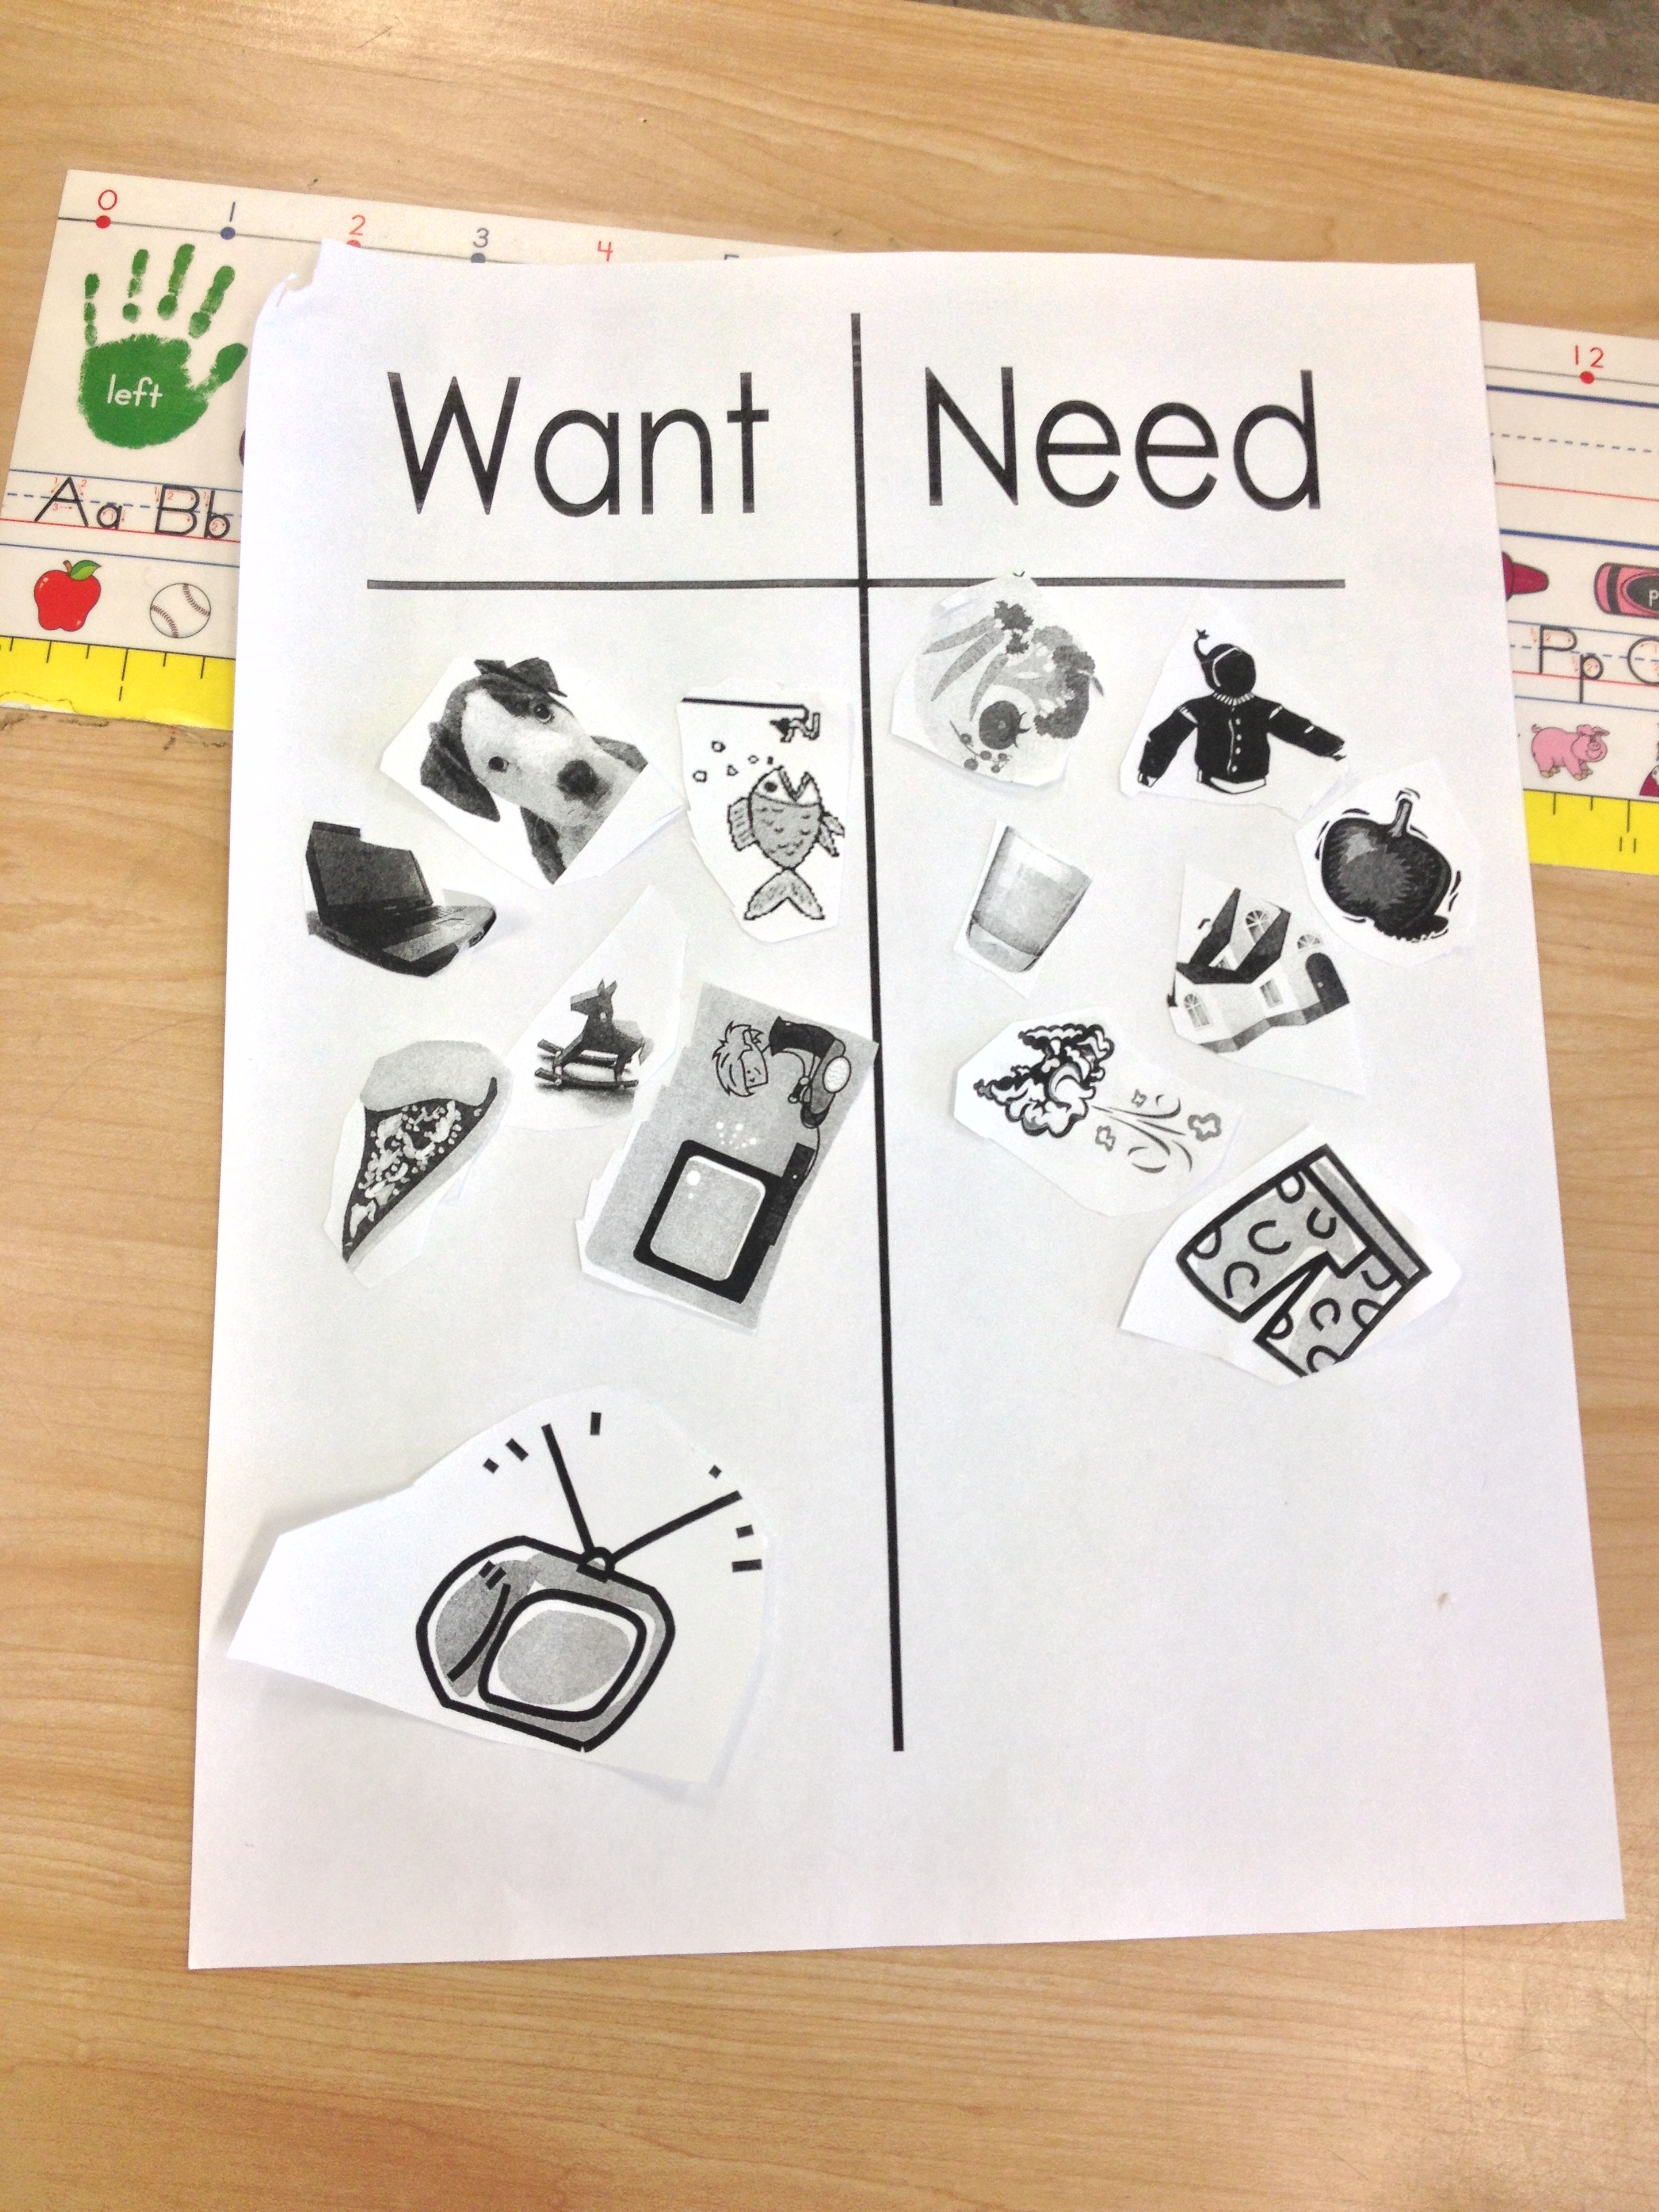 Wants And Needs Of Living Things Mme G C Work In Progress